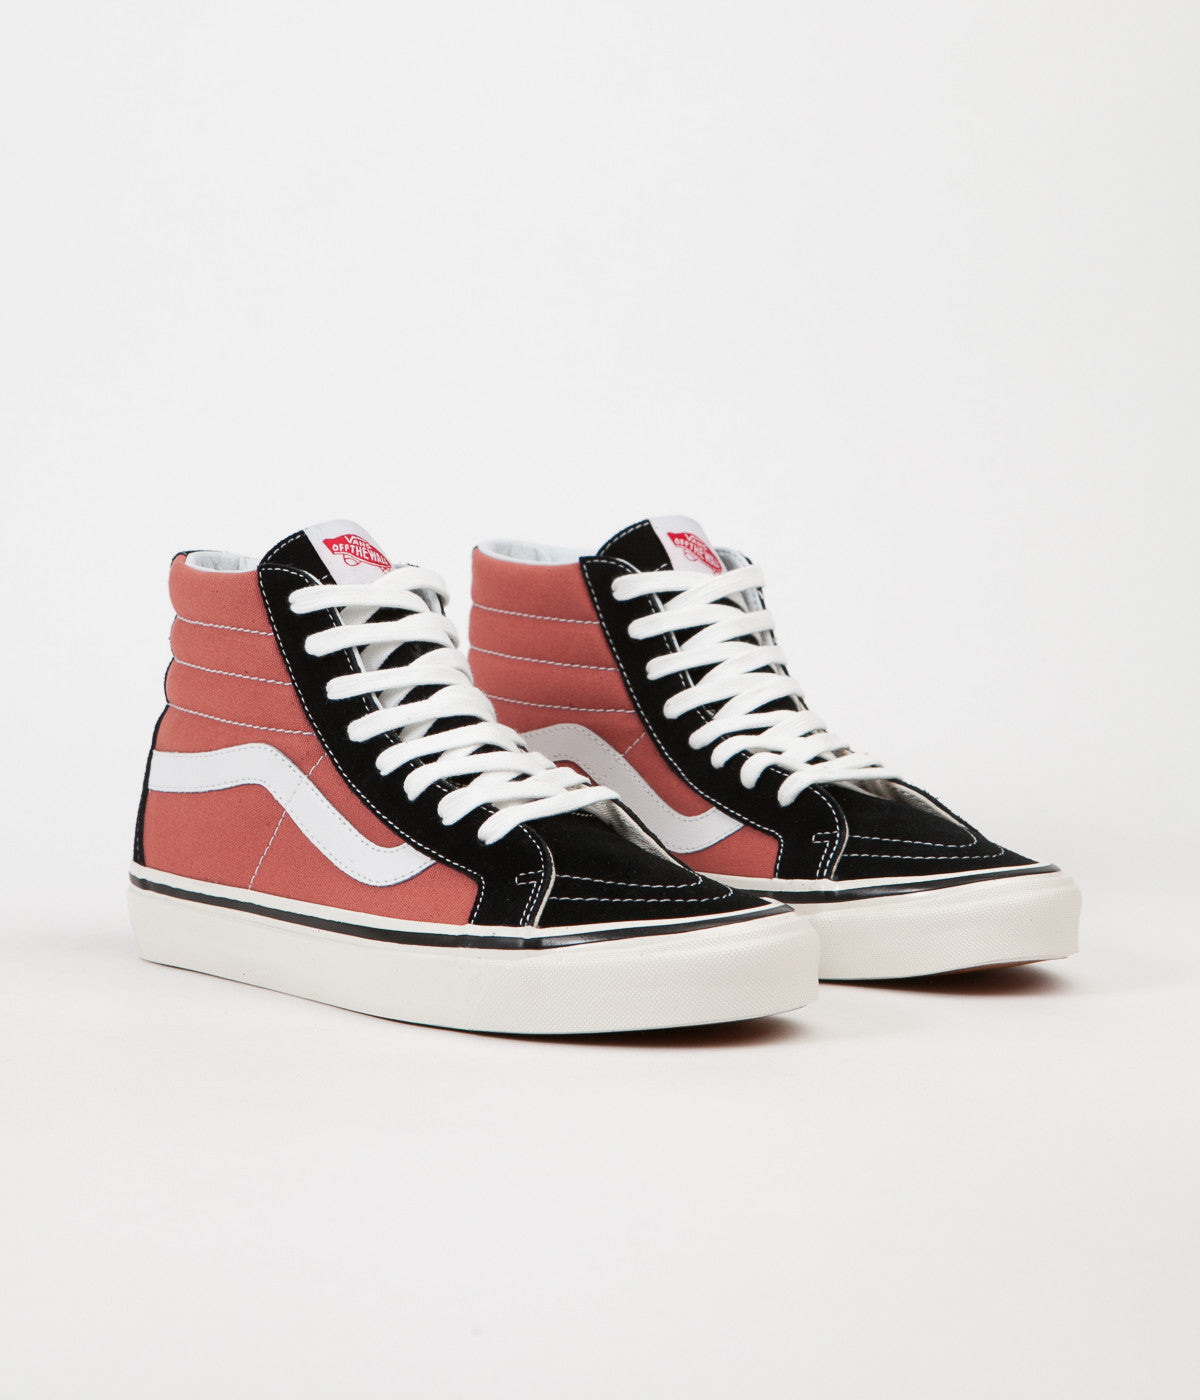 Vans Sk8-Hi 38 DX Anaheim Factory Shoes - OG Rust / Black